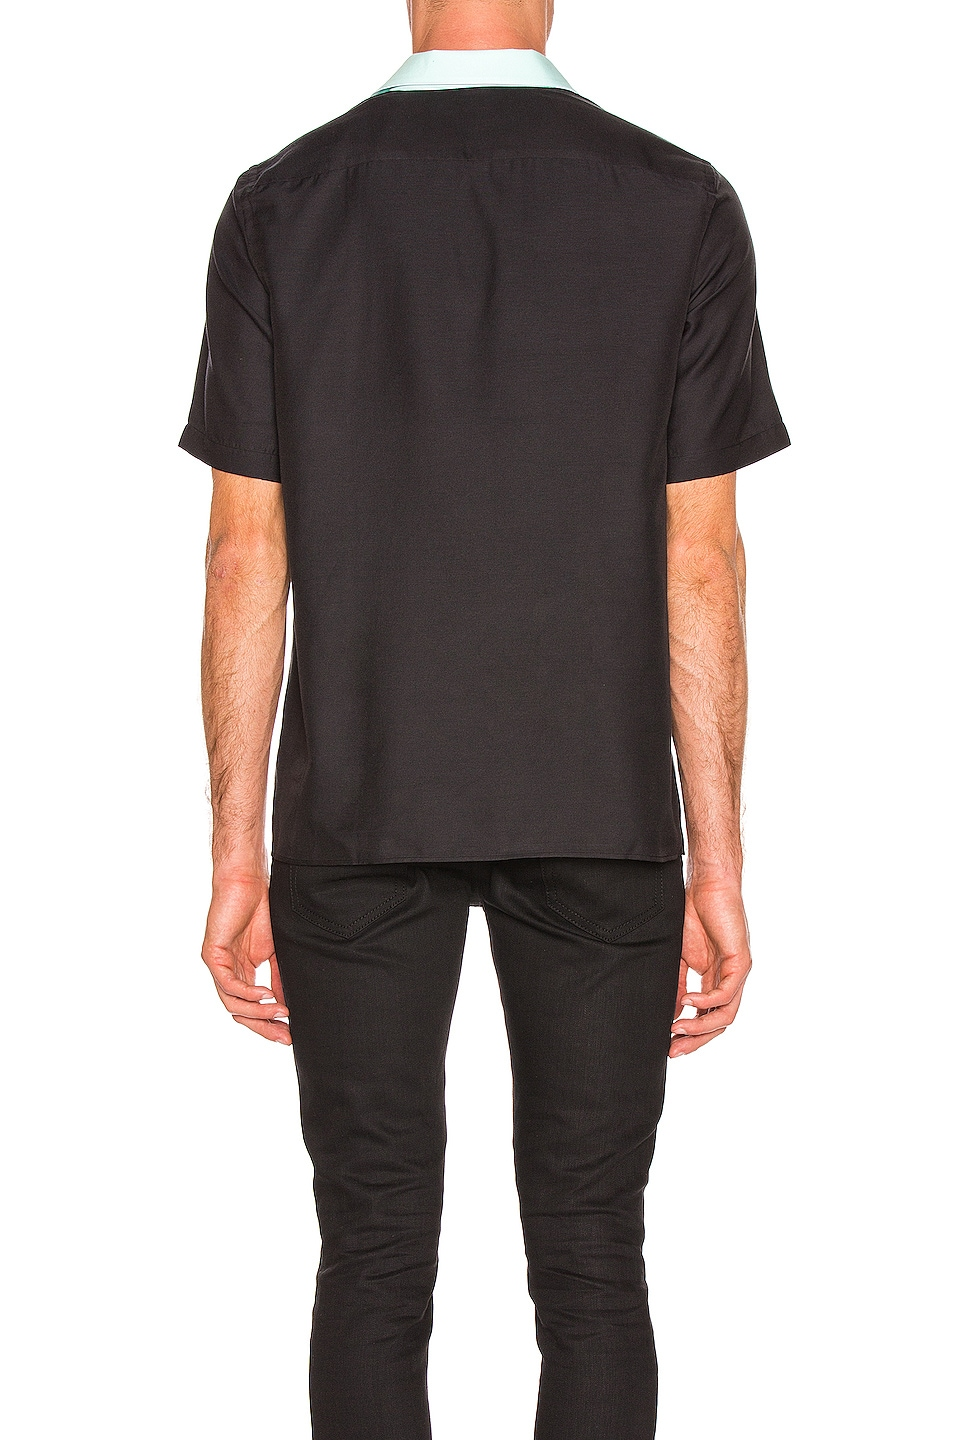 Image 3 of Cobra SC Cabrio Shirt in Black & Sea Foam